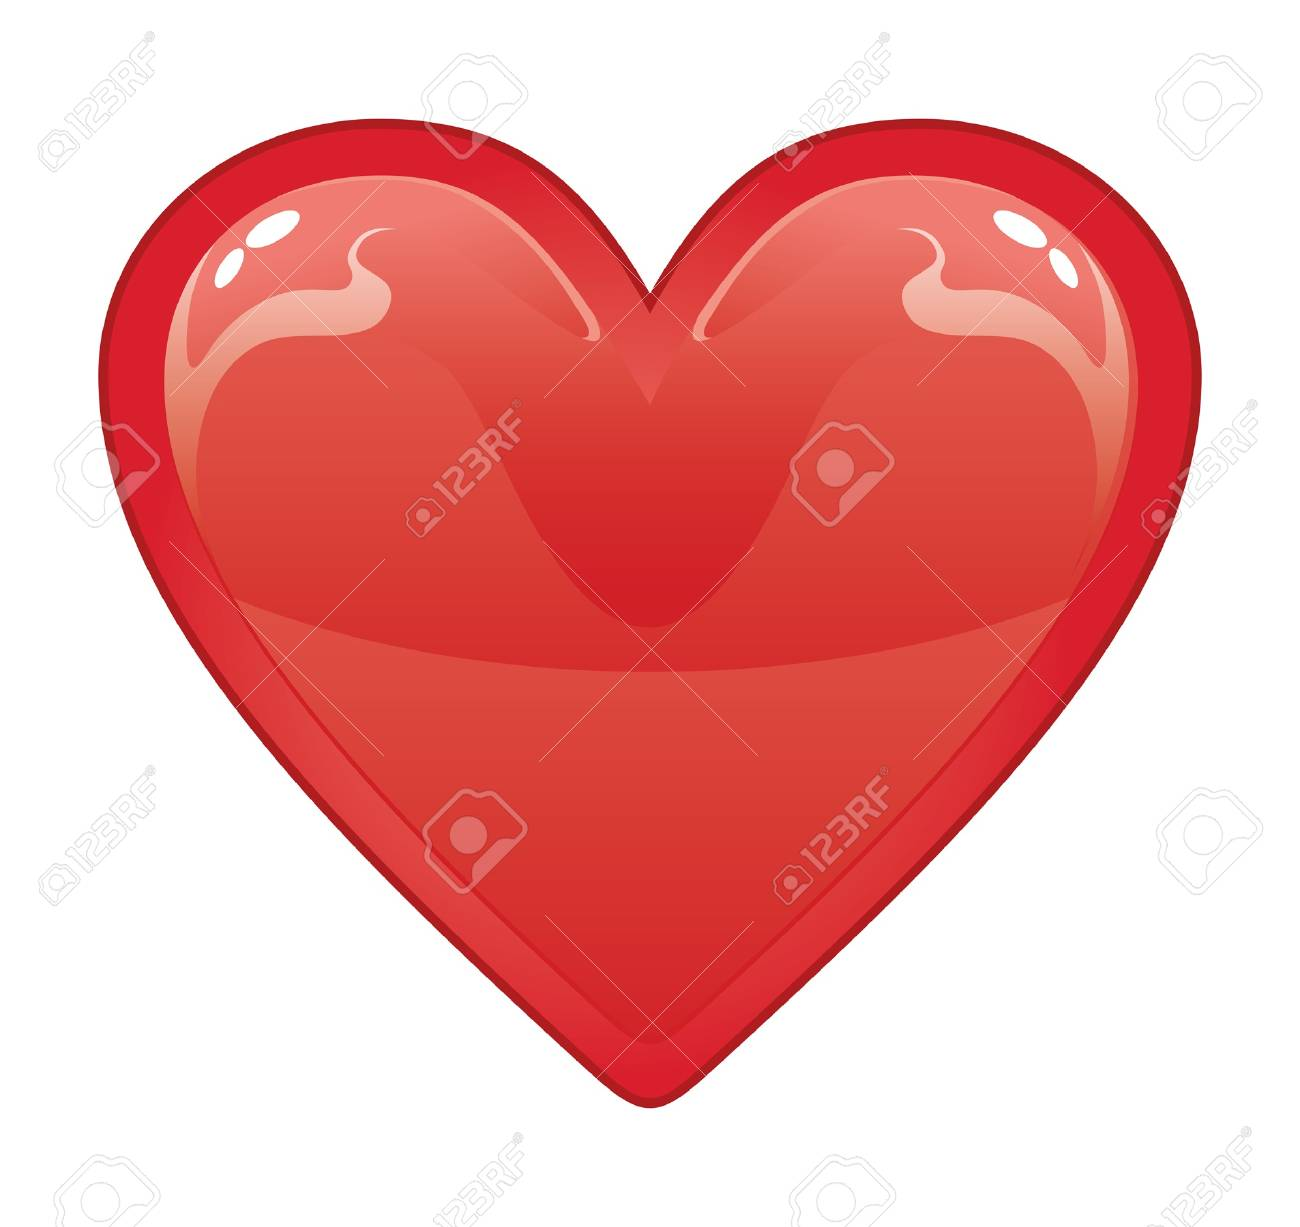 Valentine Heart is an illustration of a red valentine heart on a white background. Stock Vector - 13607907